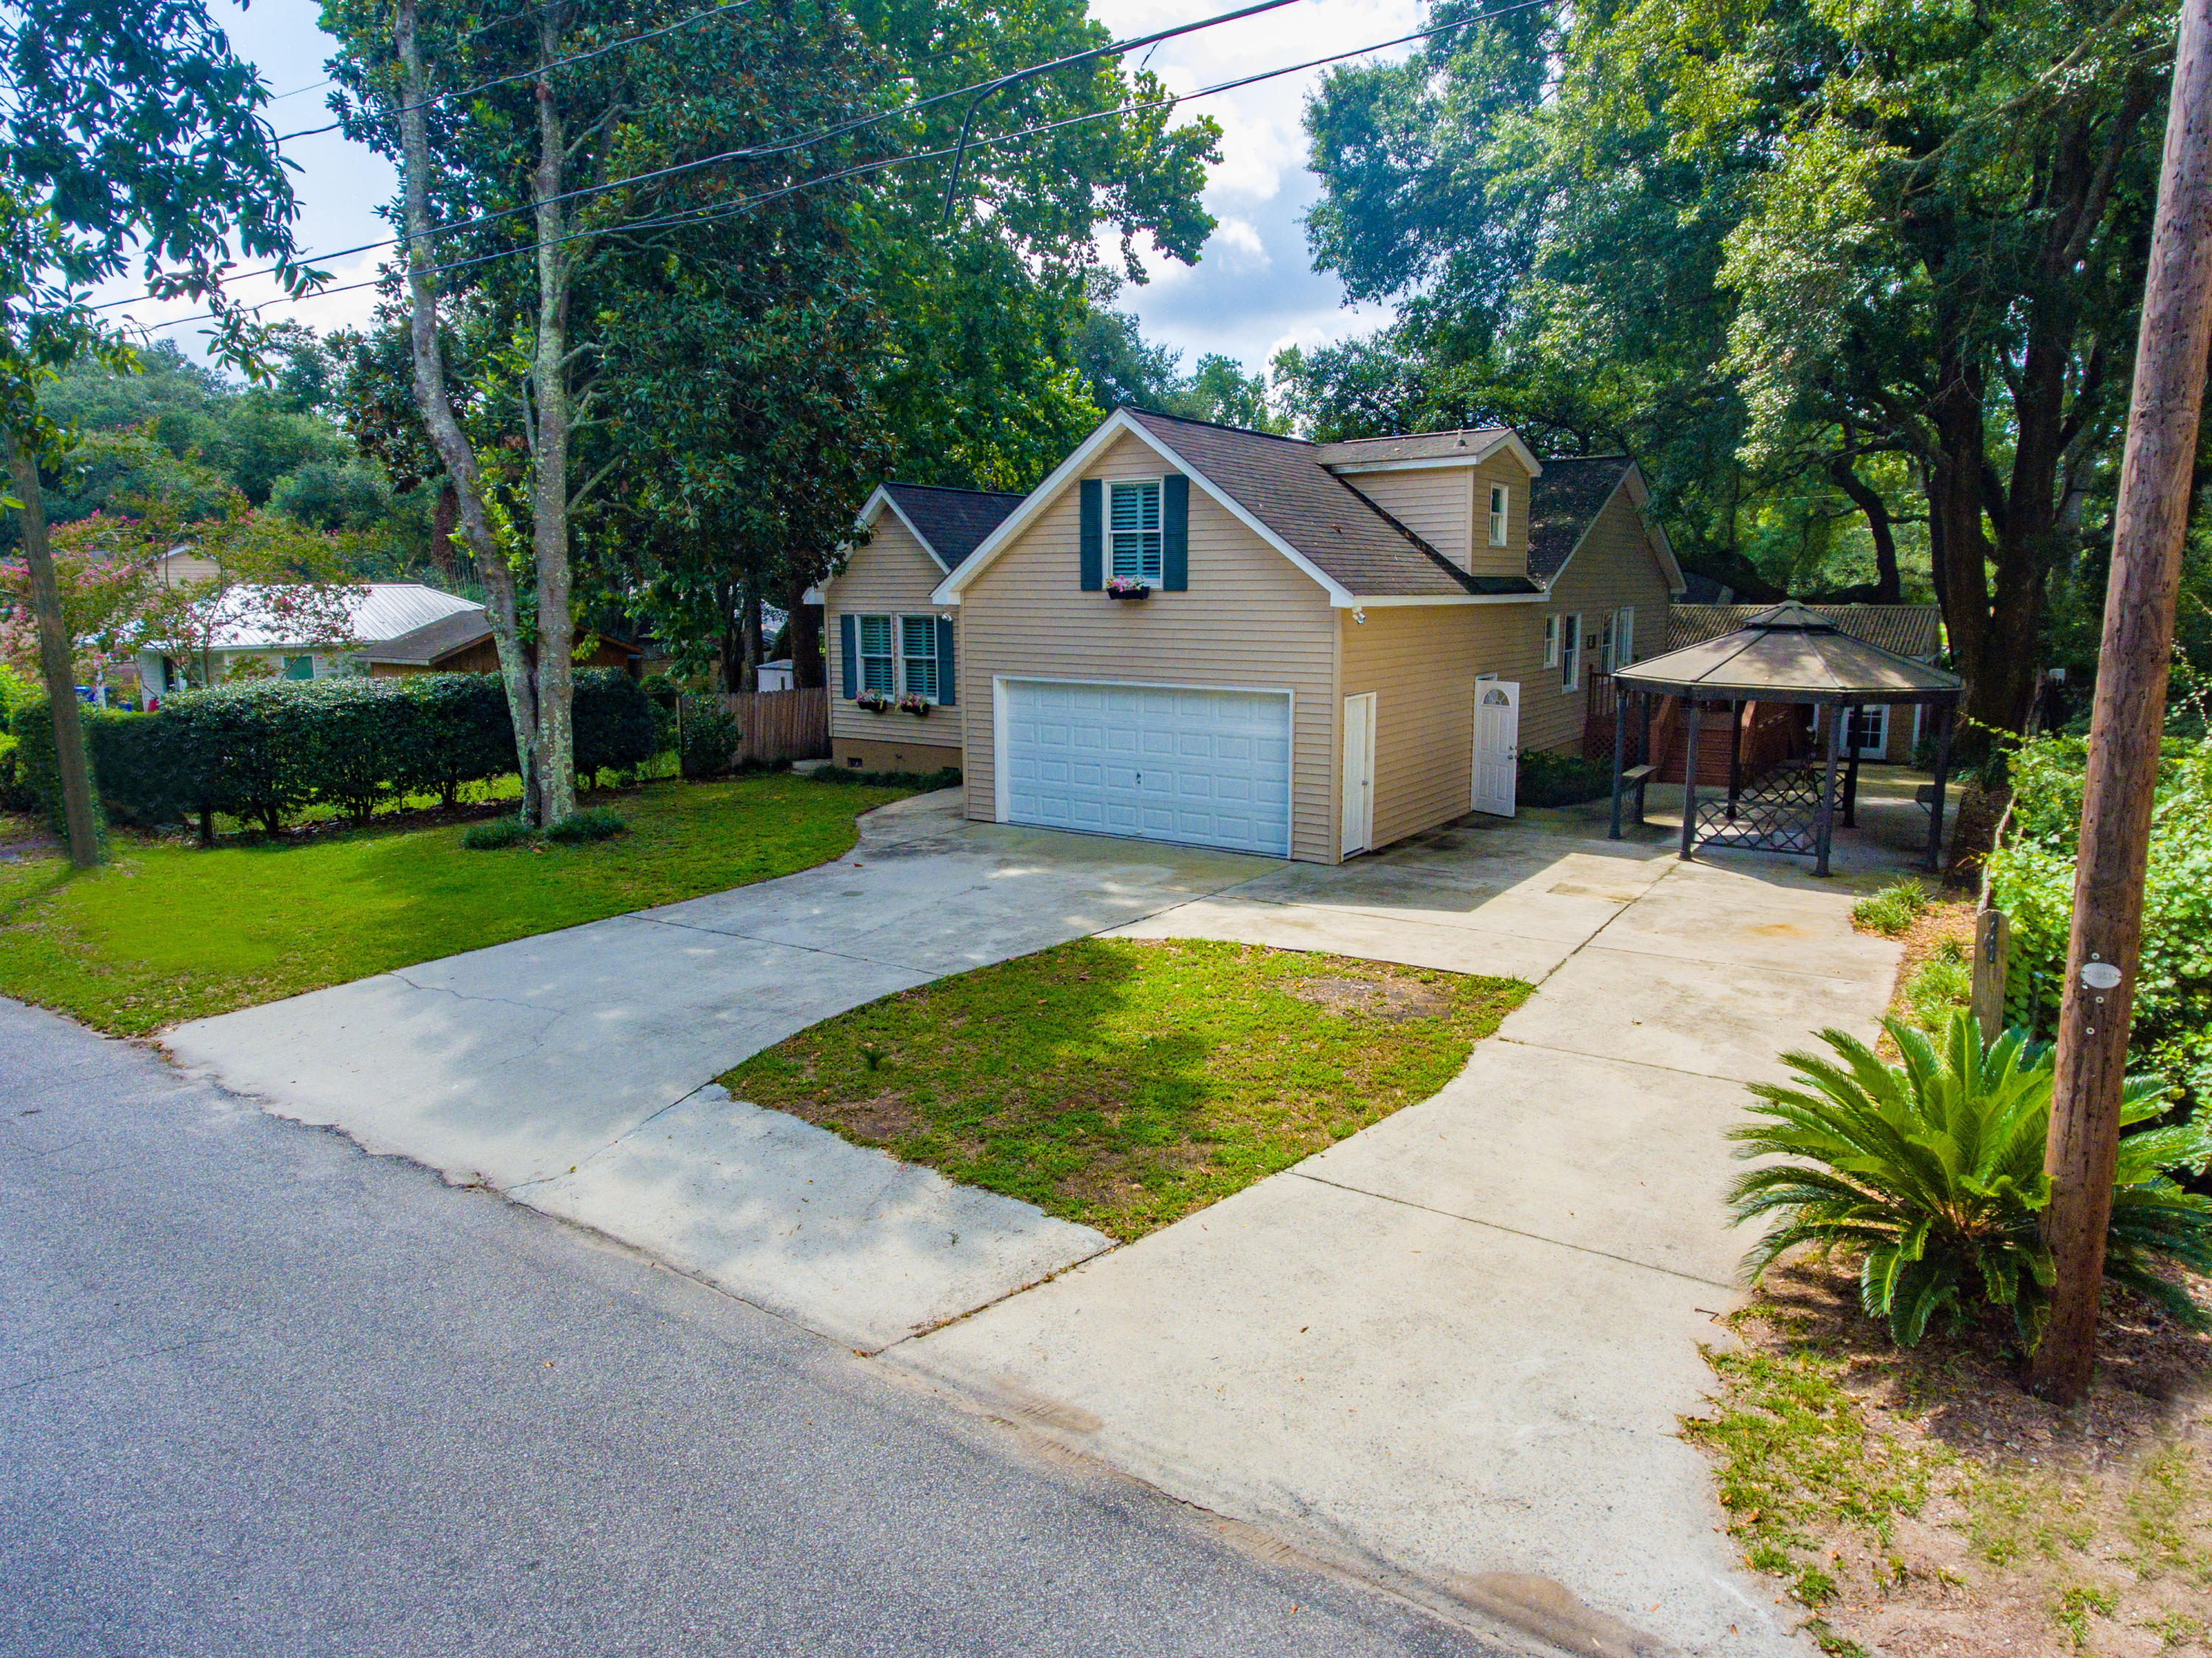 Riverland Terrace Homes For Sale - 2115 Welch, Charleston, SC - 28